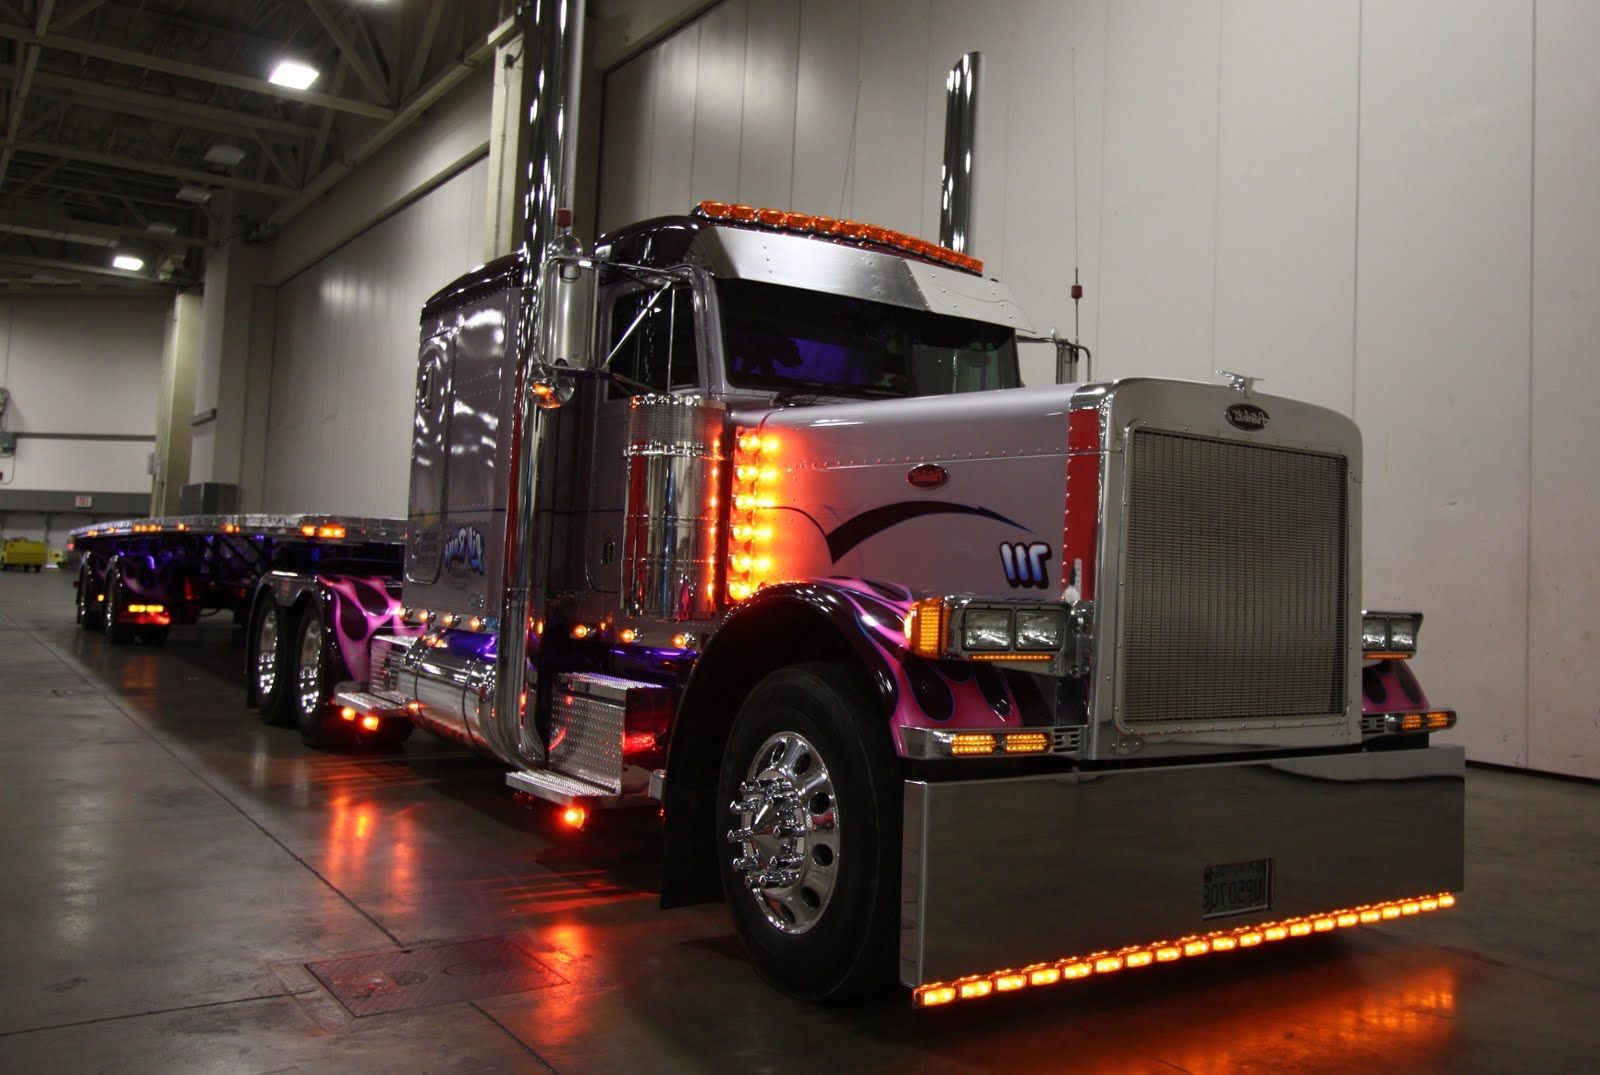 best american trucks of all time - 1000+ images about Nice truck on Pinterest Semi trucks, hevy ...